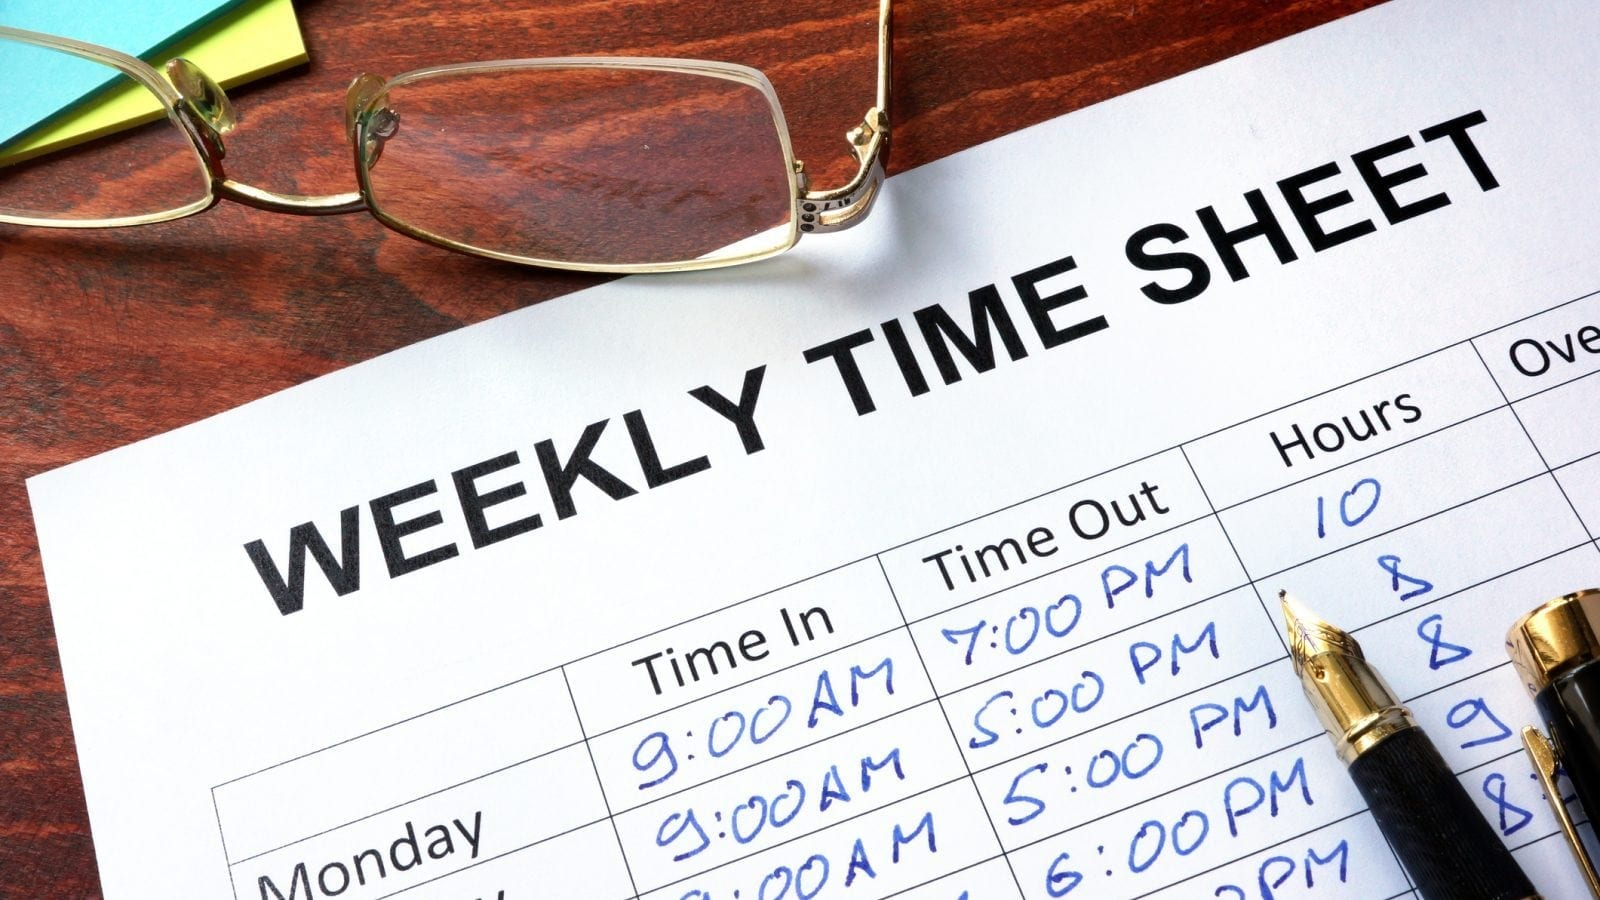 Weekly Time Sheet Stock Photo